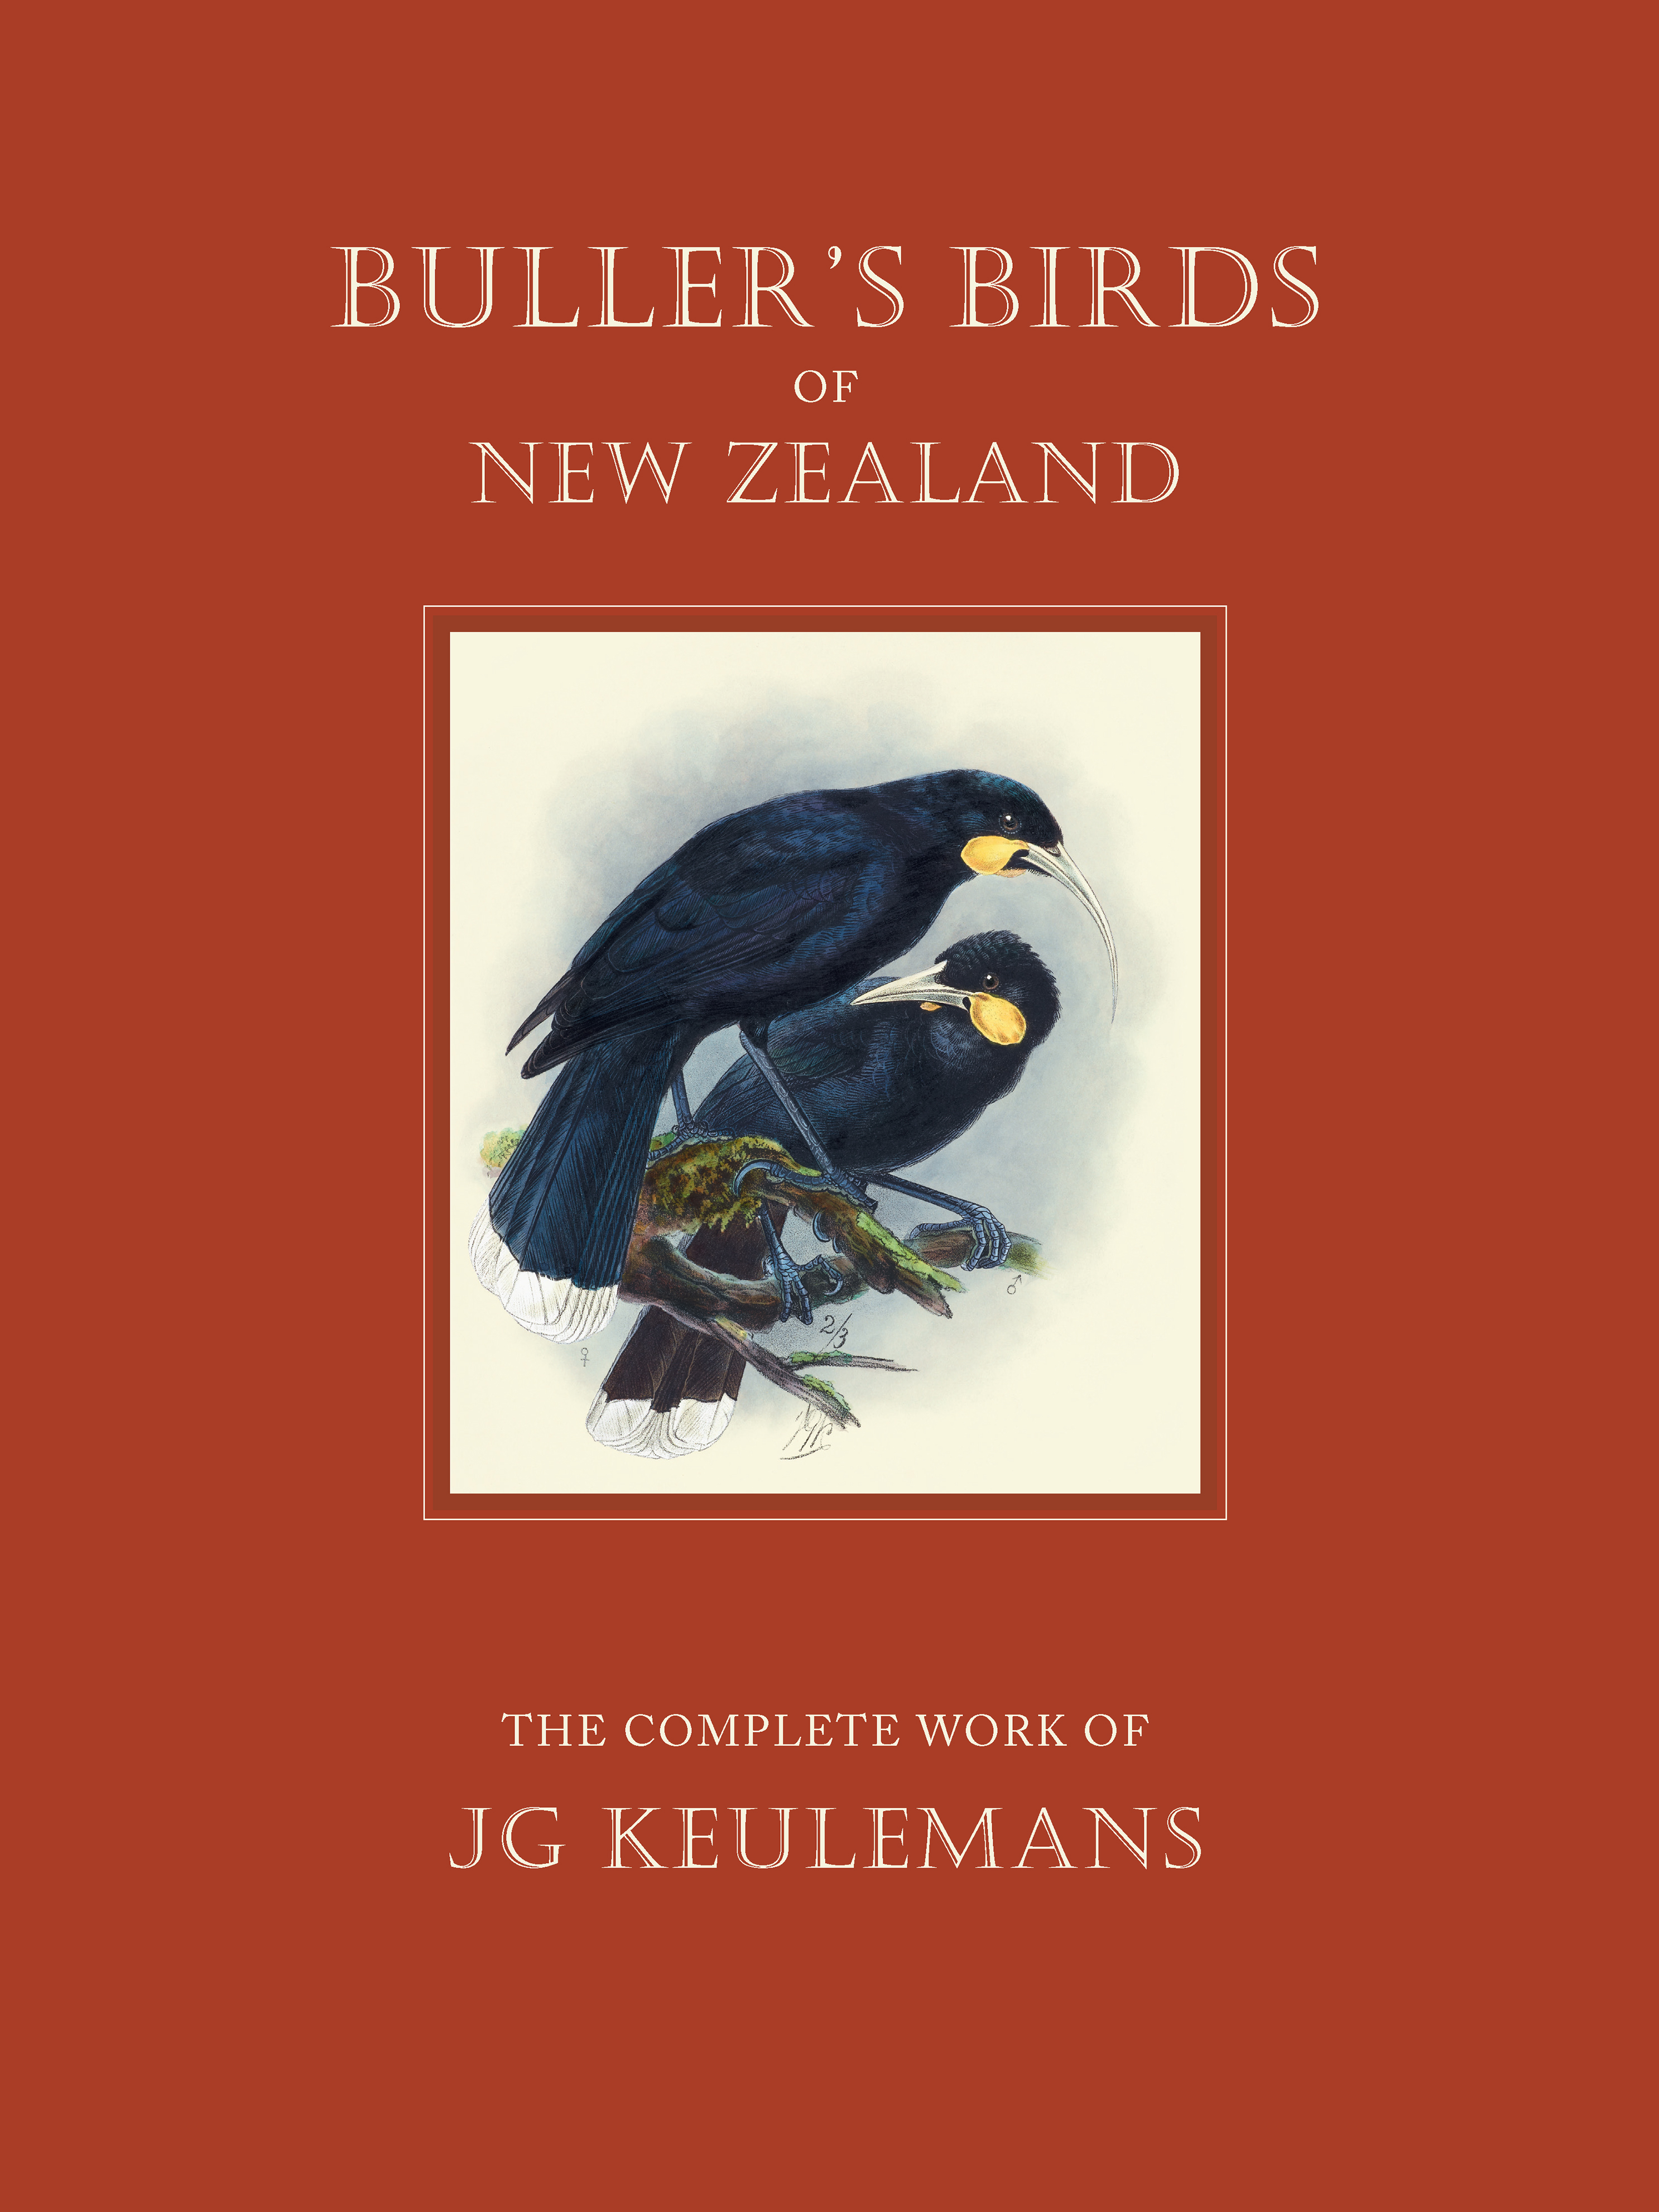 Buller's Birds of New Zealand: The Complete Work of J G Keulemans